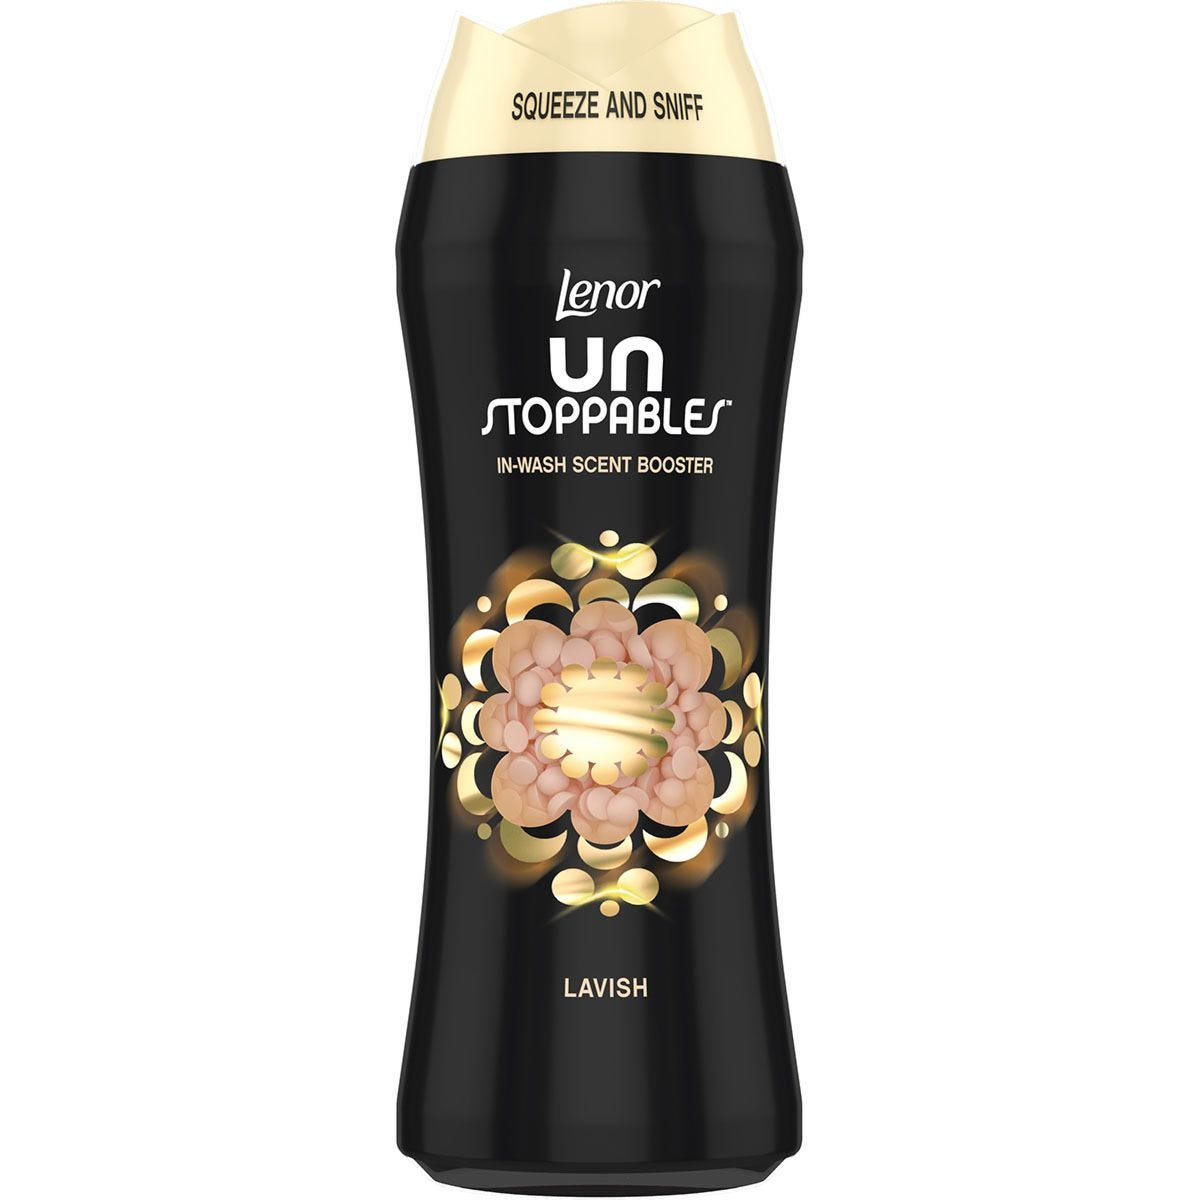 Lenor Unstoppables Lavish In-Wash Scent Booster - 285g